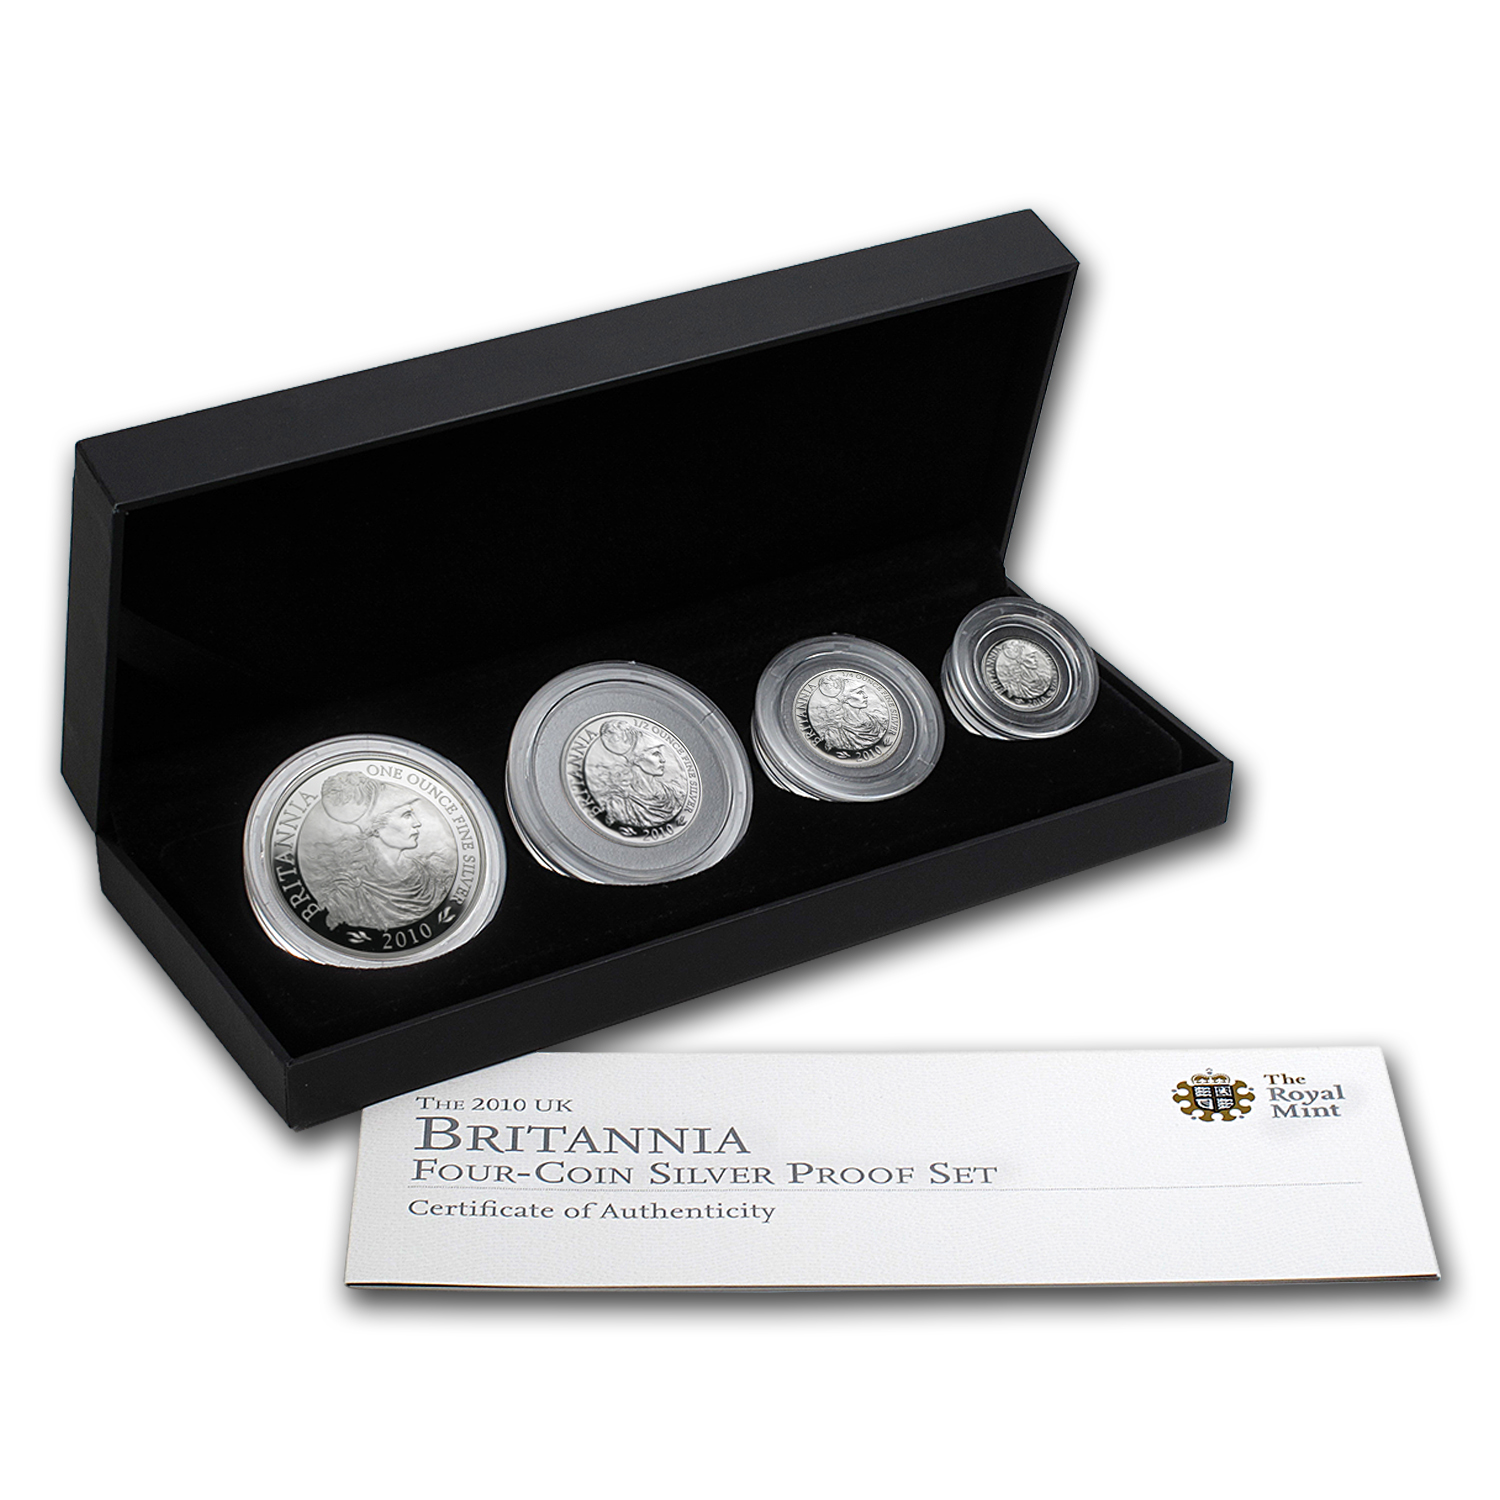 2010 GB 4-Coin Silver Britannia Proof Set (w/Box & COA)